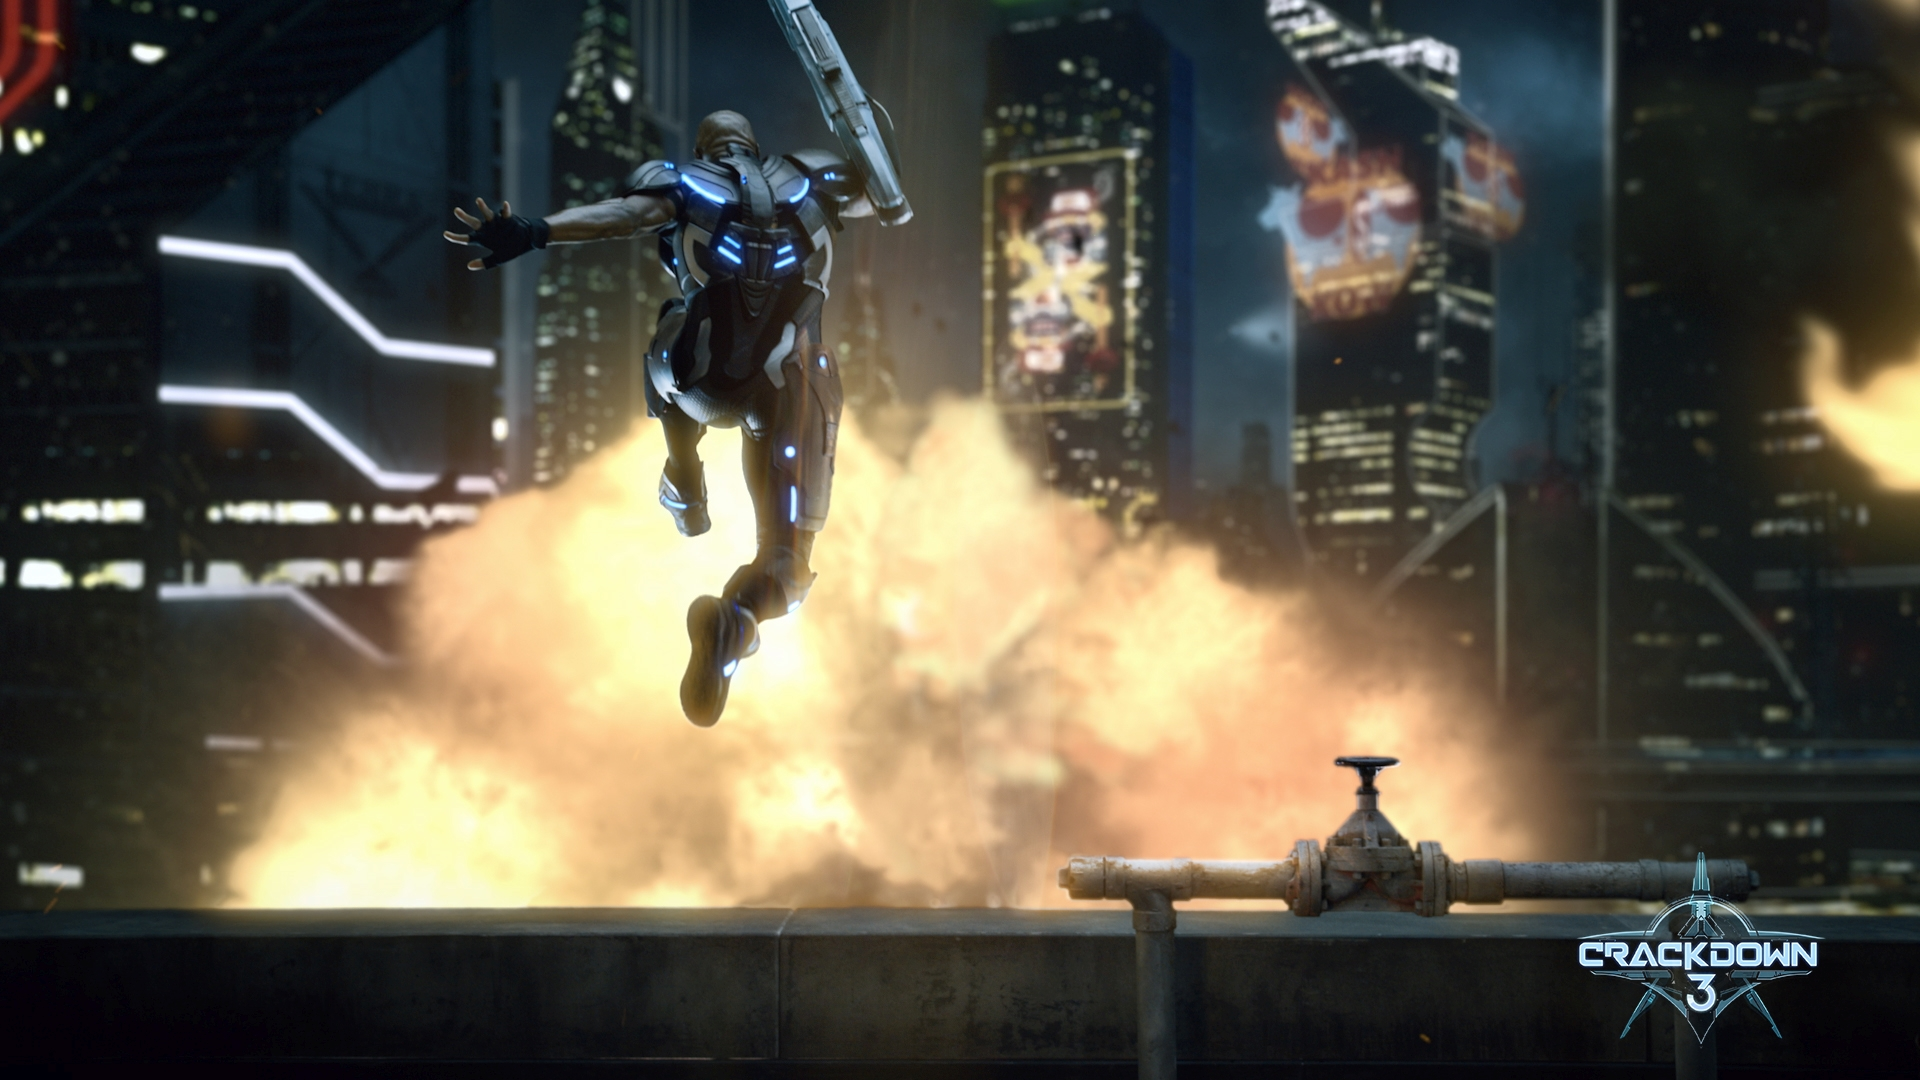 Crackdown 3 Commander Jaxon Jumping